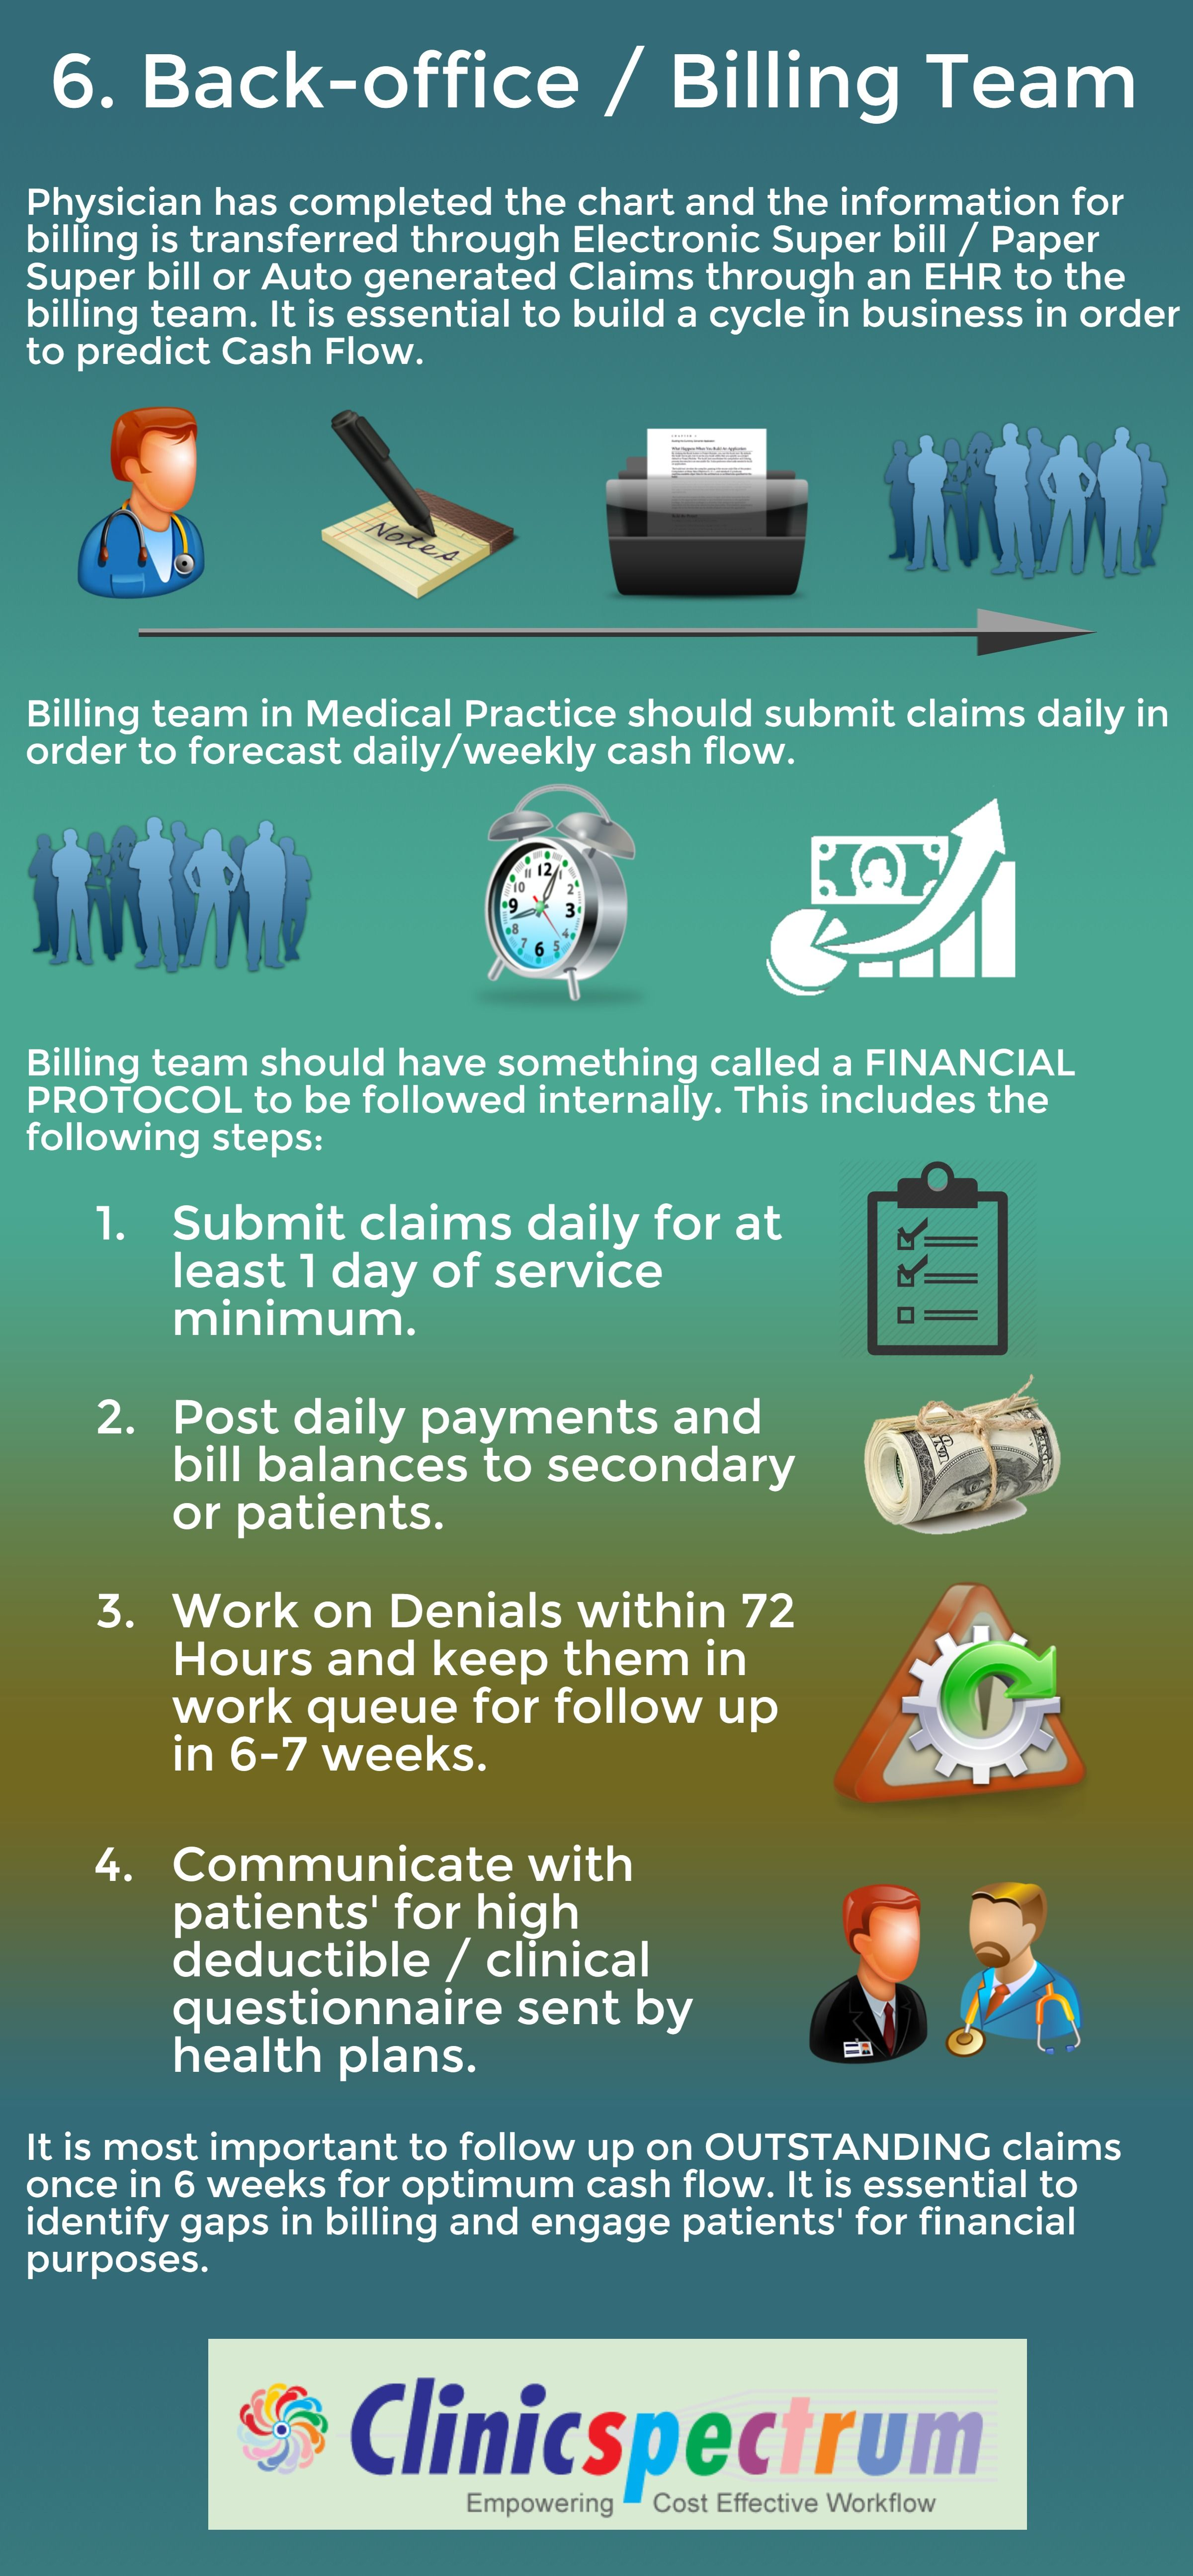 Healthcare service provider claims follow up